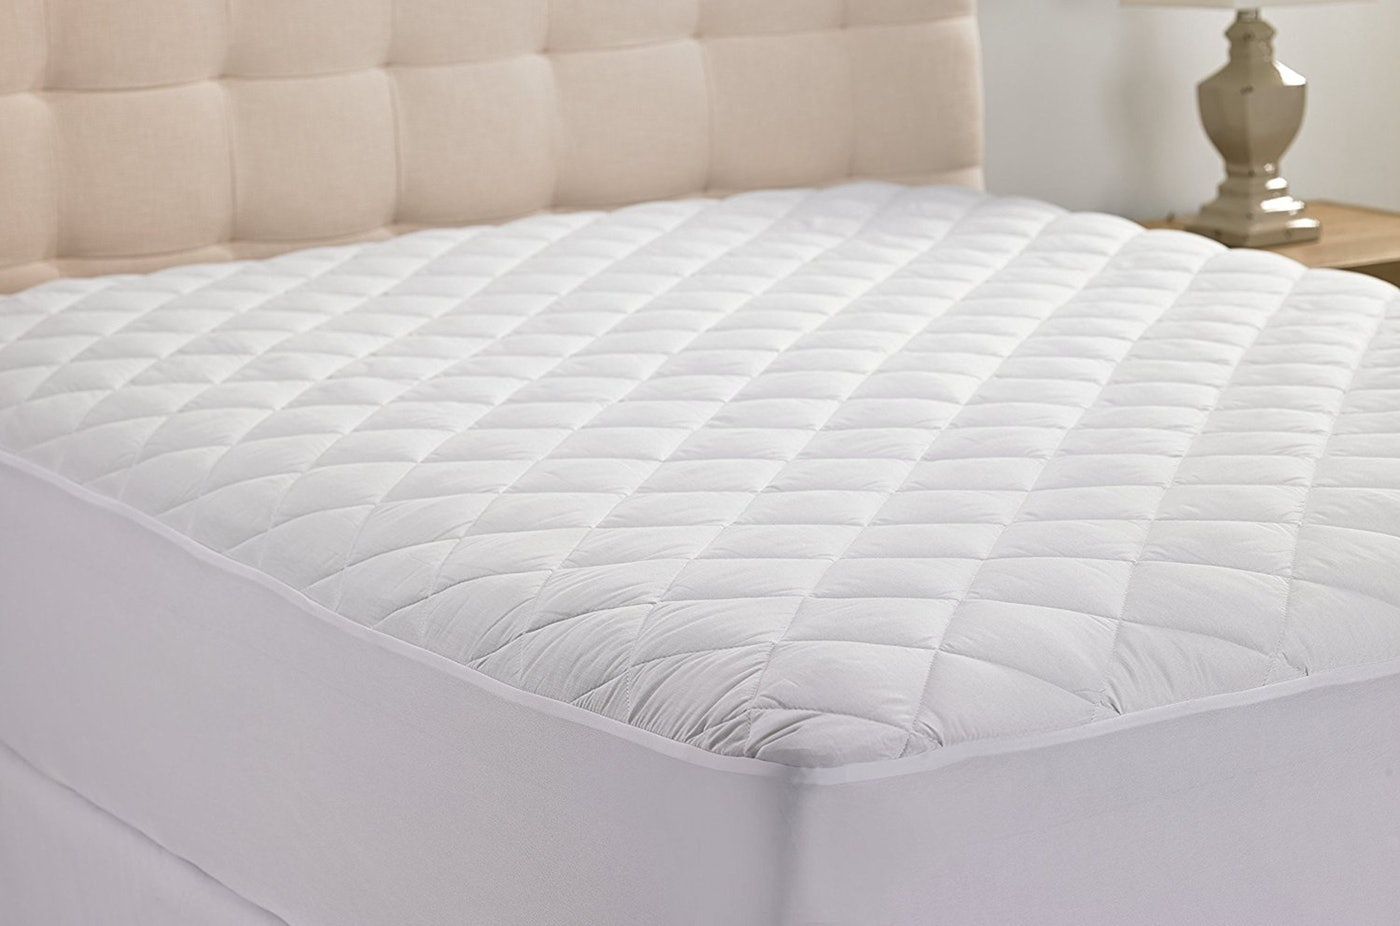 How To Make A Bad Mattress More Comfortable With 11 Ingenious Products